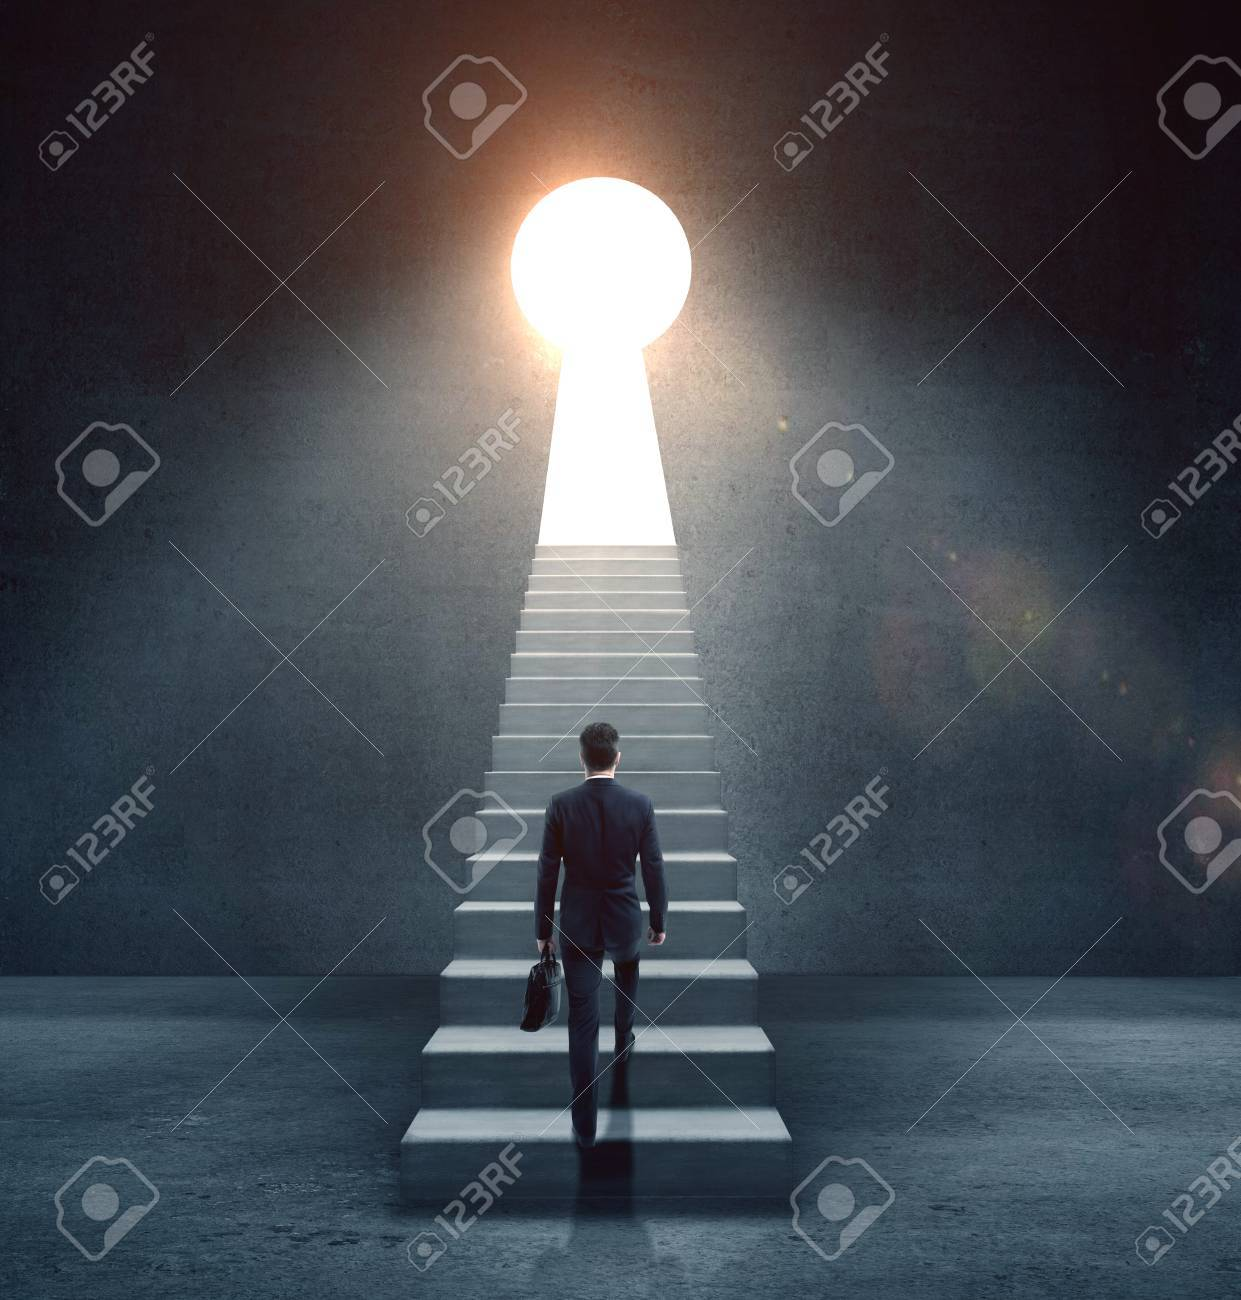 businessman climbing on concrete ledder to open door in form keyhole - 51791231